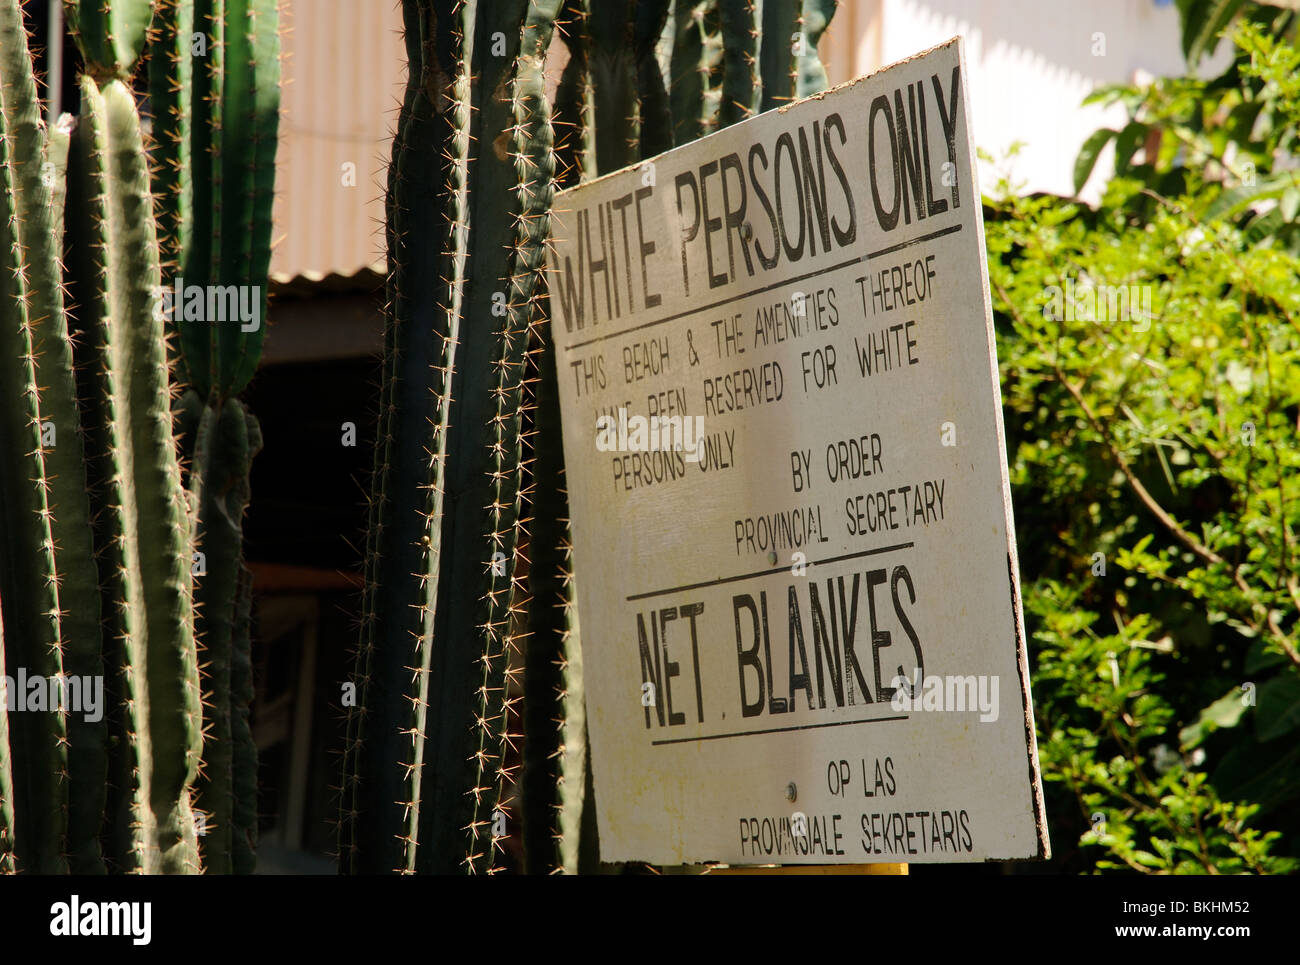 Historic Apartheid sign 'White Persons Only' 'No Blacks' used on a South African beach pre 1994 - Stock Image